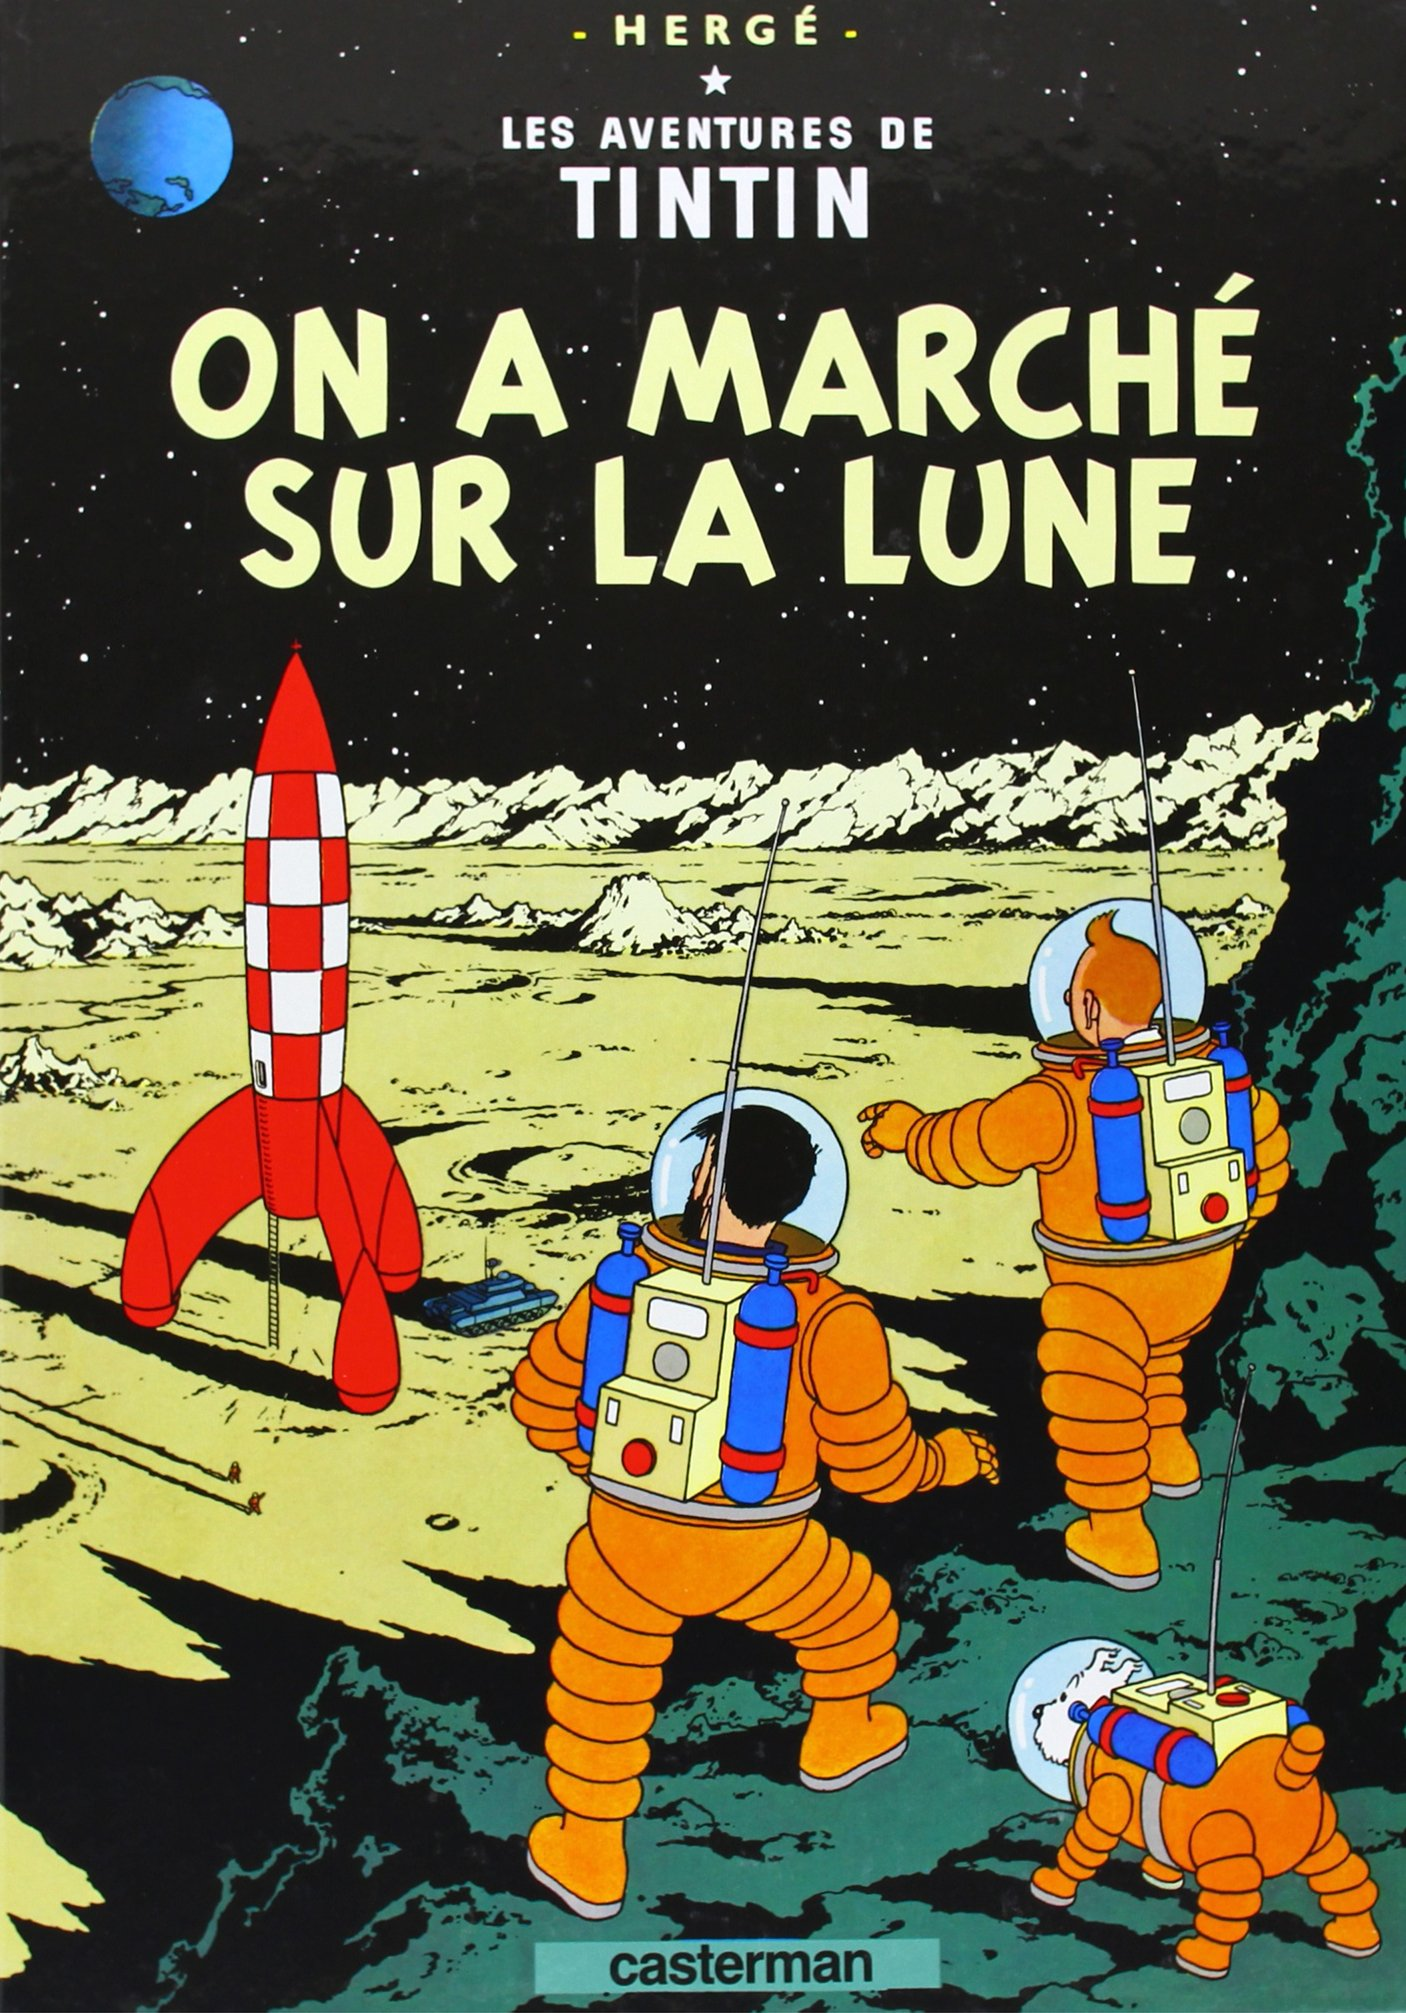 tintin on a marche